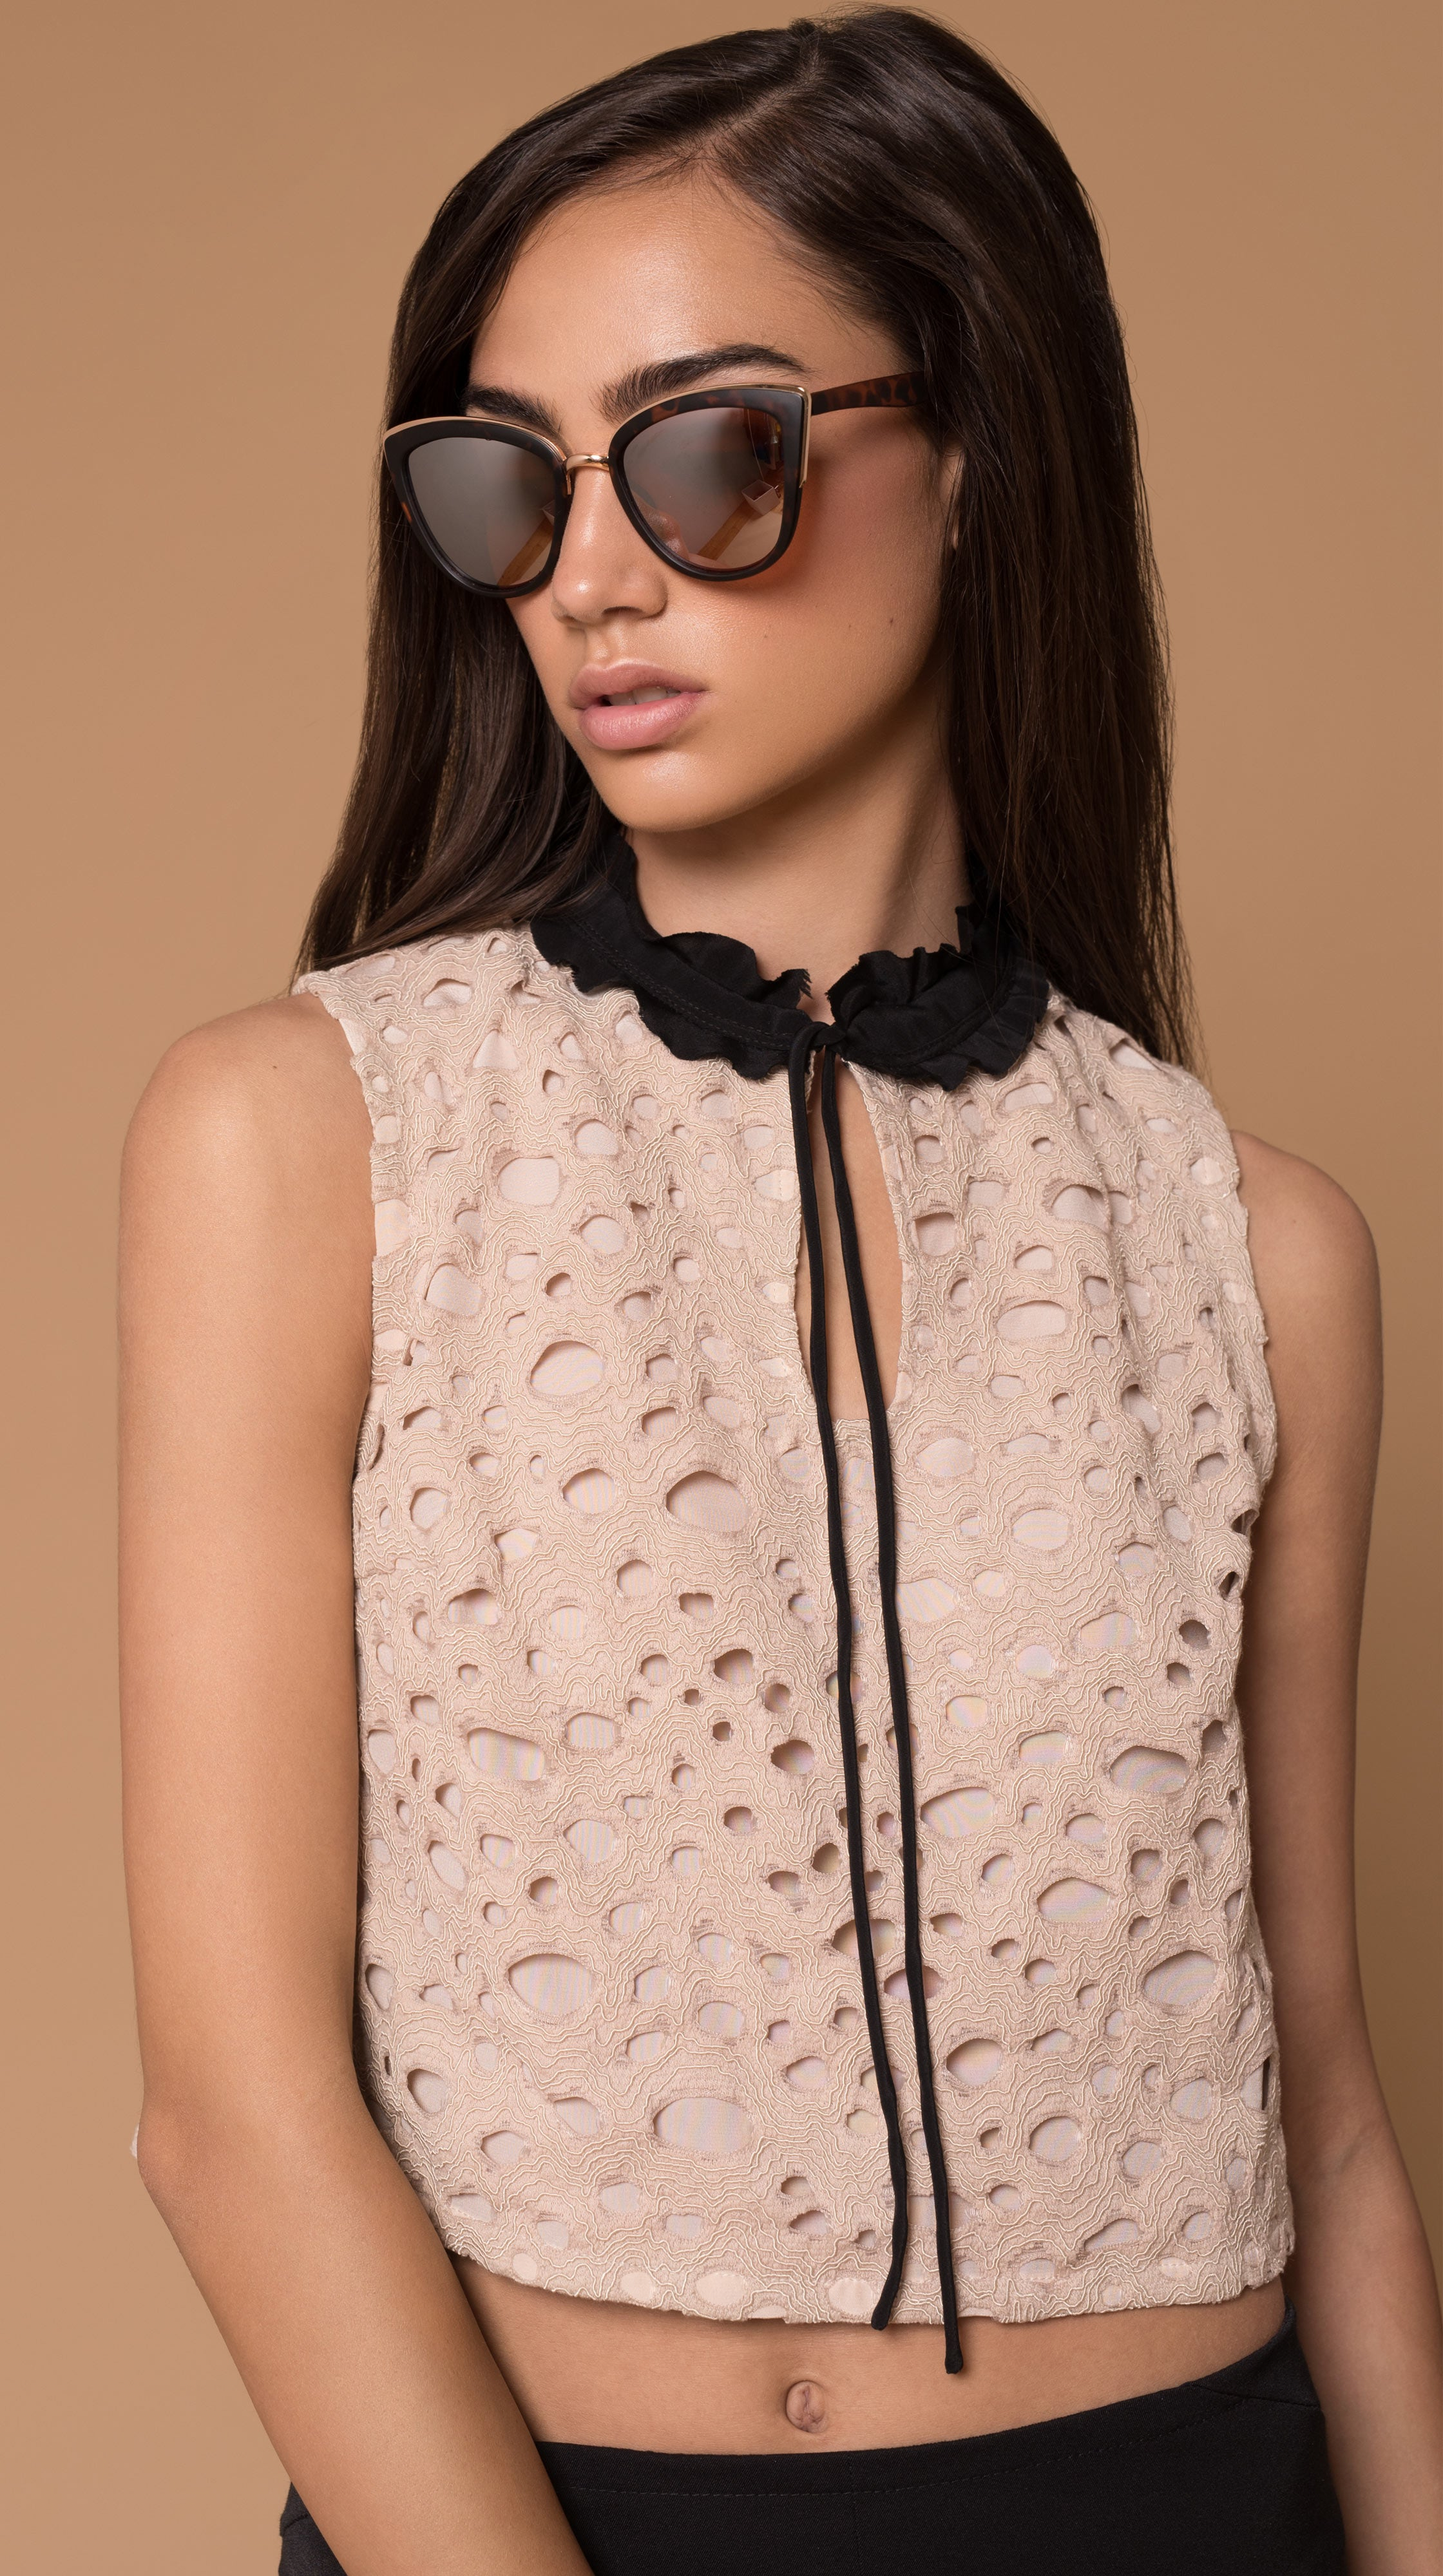 Lucia Dusty Pink Lace Ruffle Collar Crop Shirt by VARYFORM | Made in USA on-Demand | Nineteenth Amendment